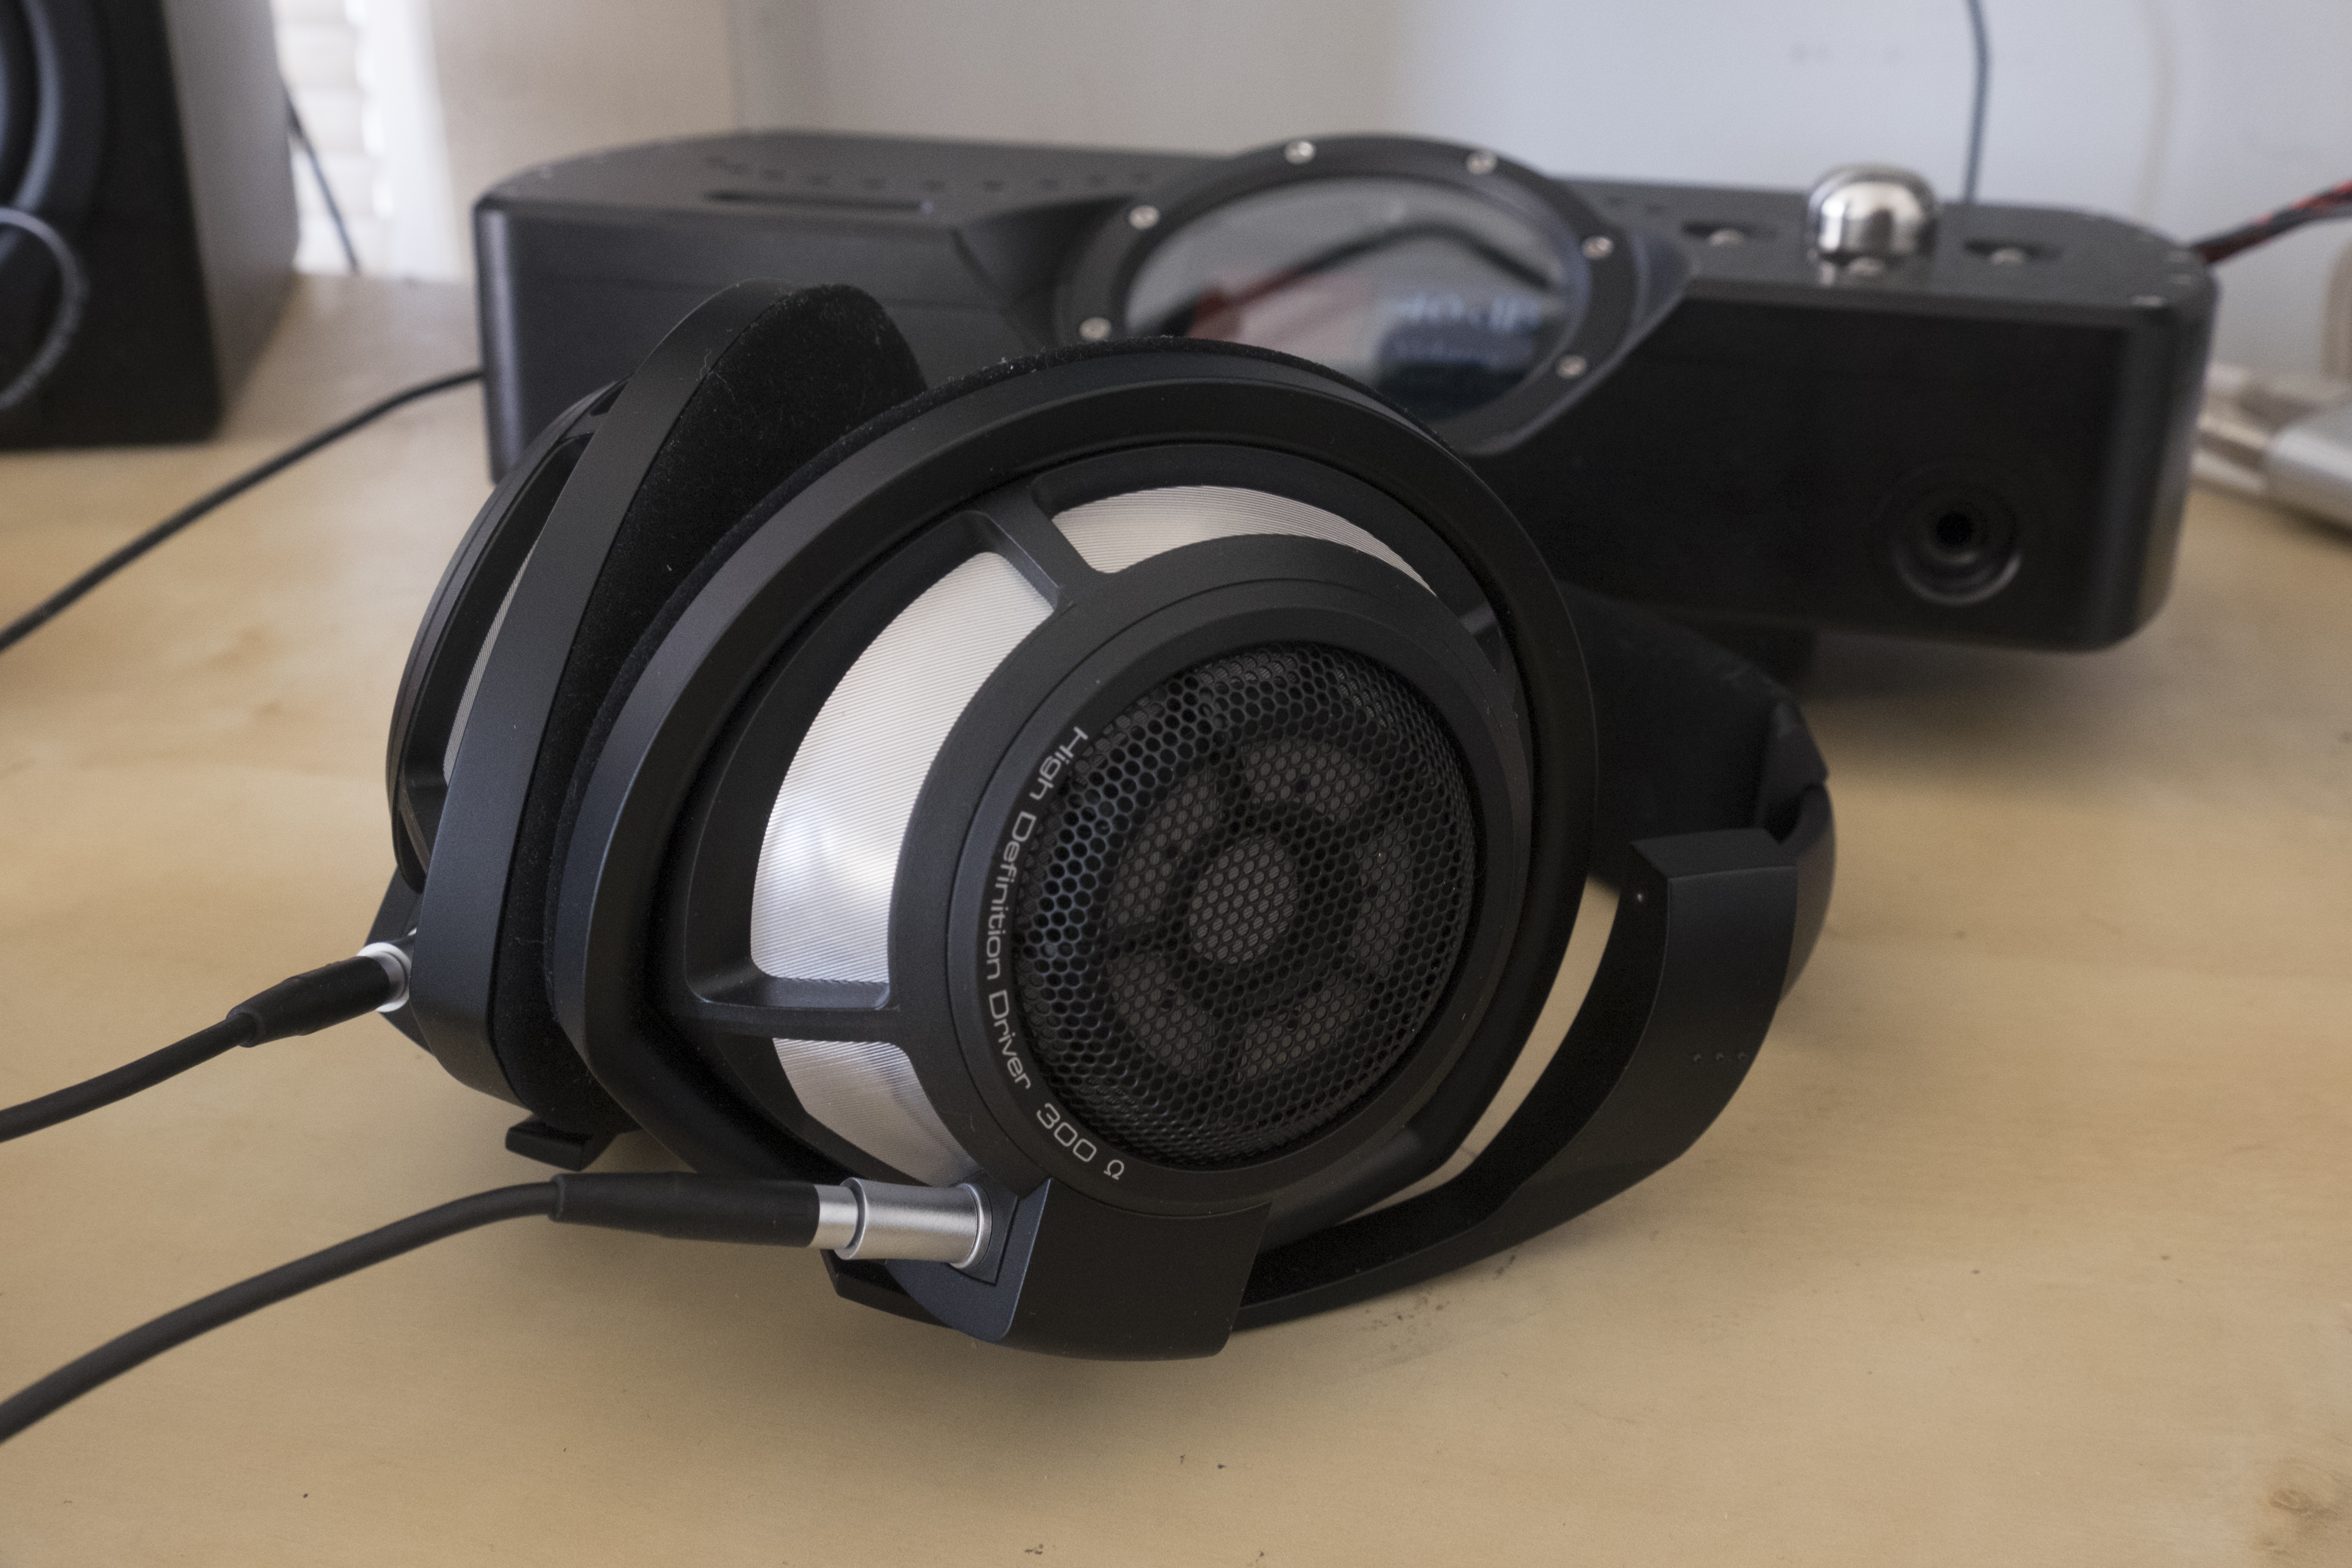 Sennheiser HD 800 S Review – A Pure, Smooth, and Balanced Headphone